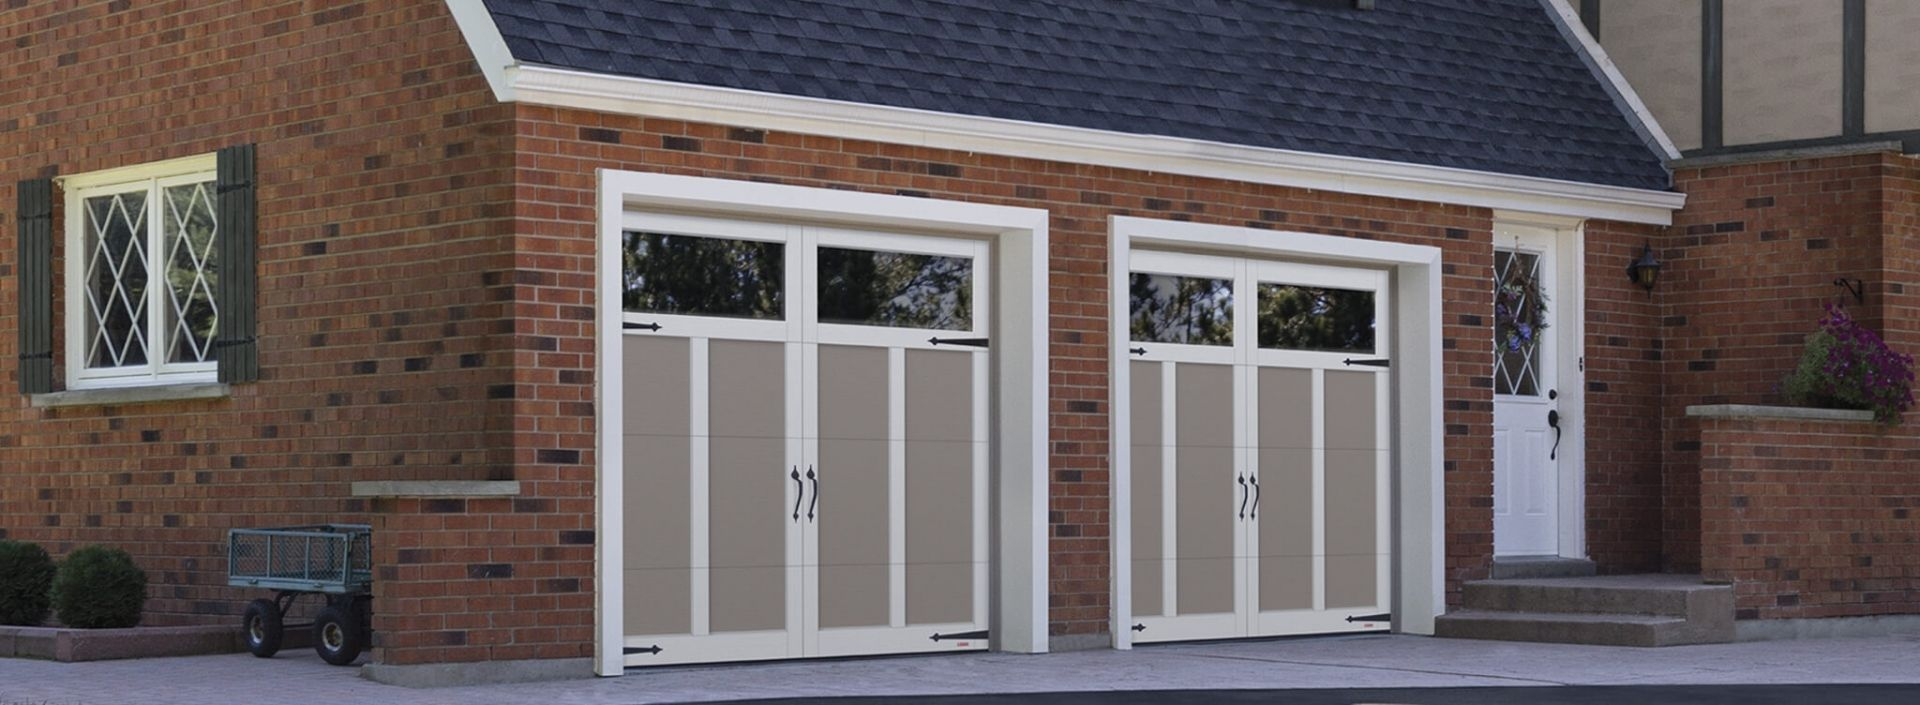 Eastman E 12 8 X 7 Claystone Doors And Ice White Overlays Panoramic Clear Windows Garage Doors Clear Windows Garage Door Opener